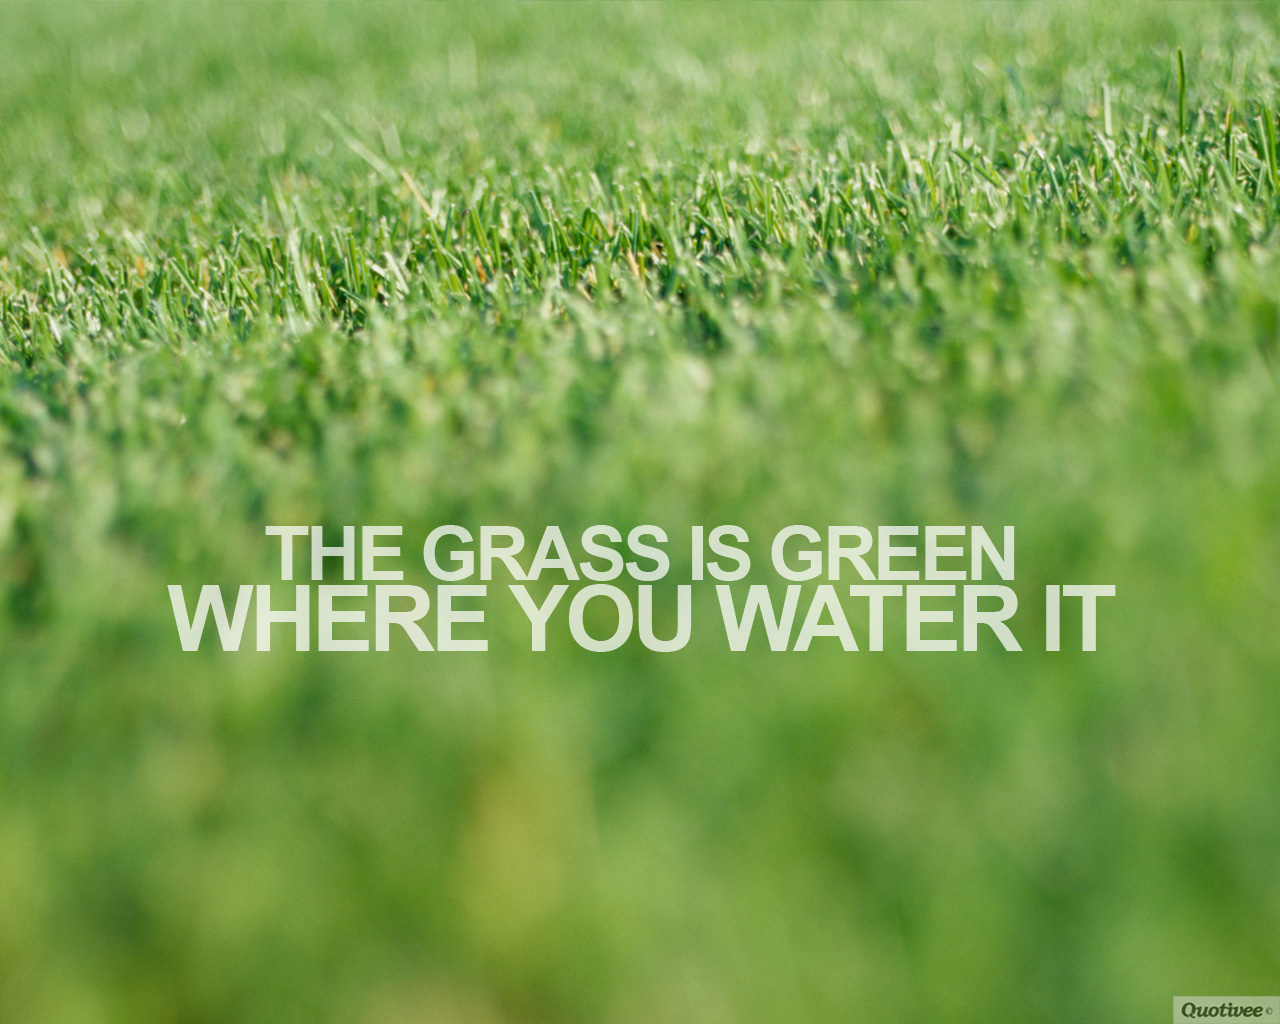 Suits Quotes Wallpaper Mobile The Grass Is Green Inspirational Quotes Quotivee